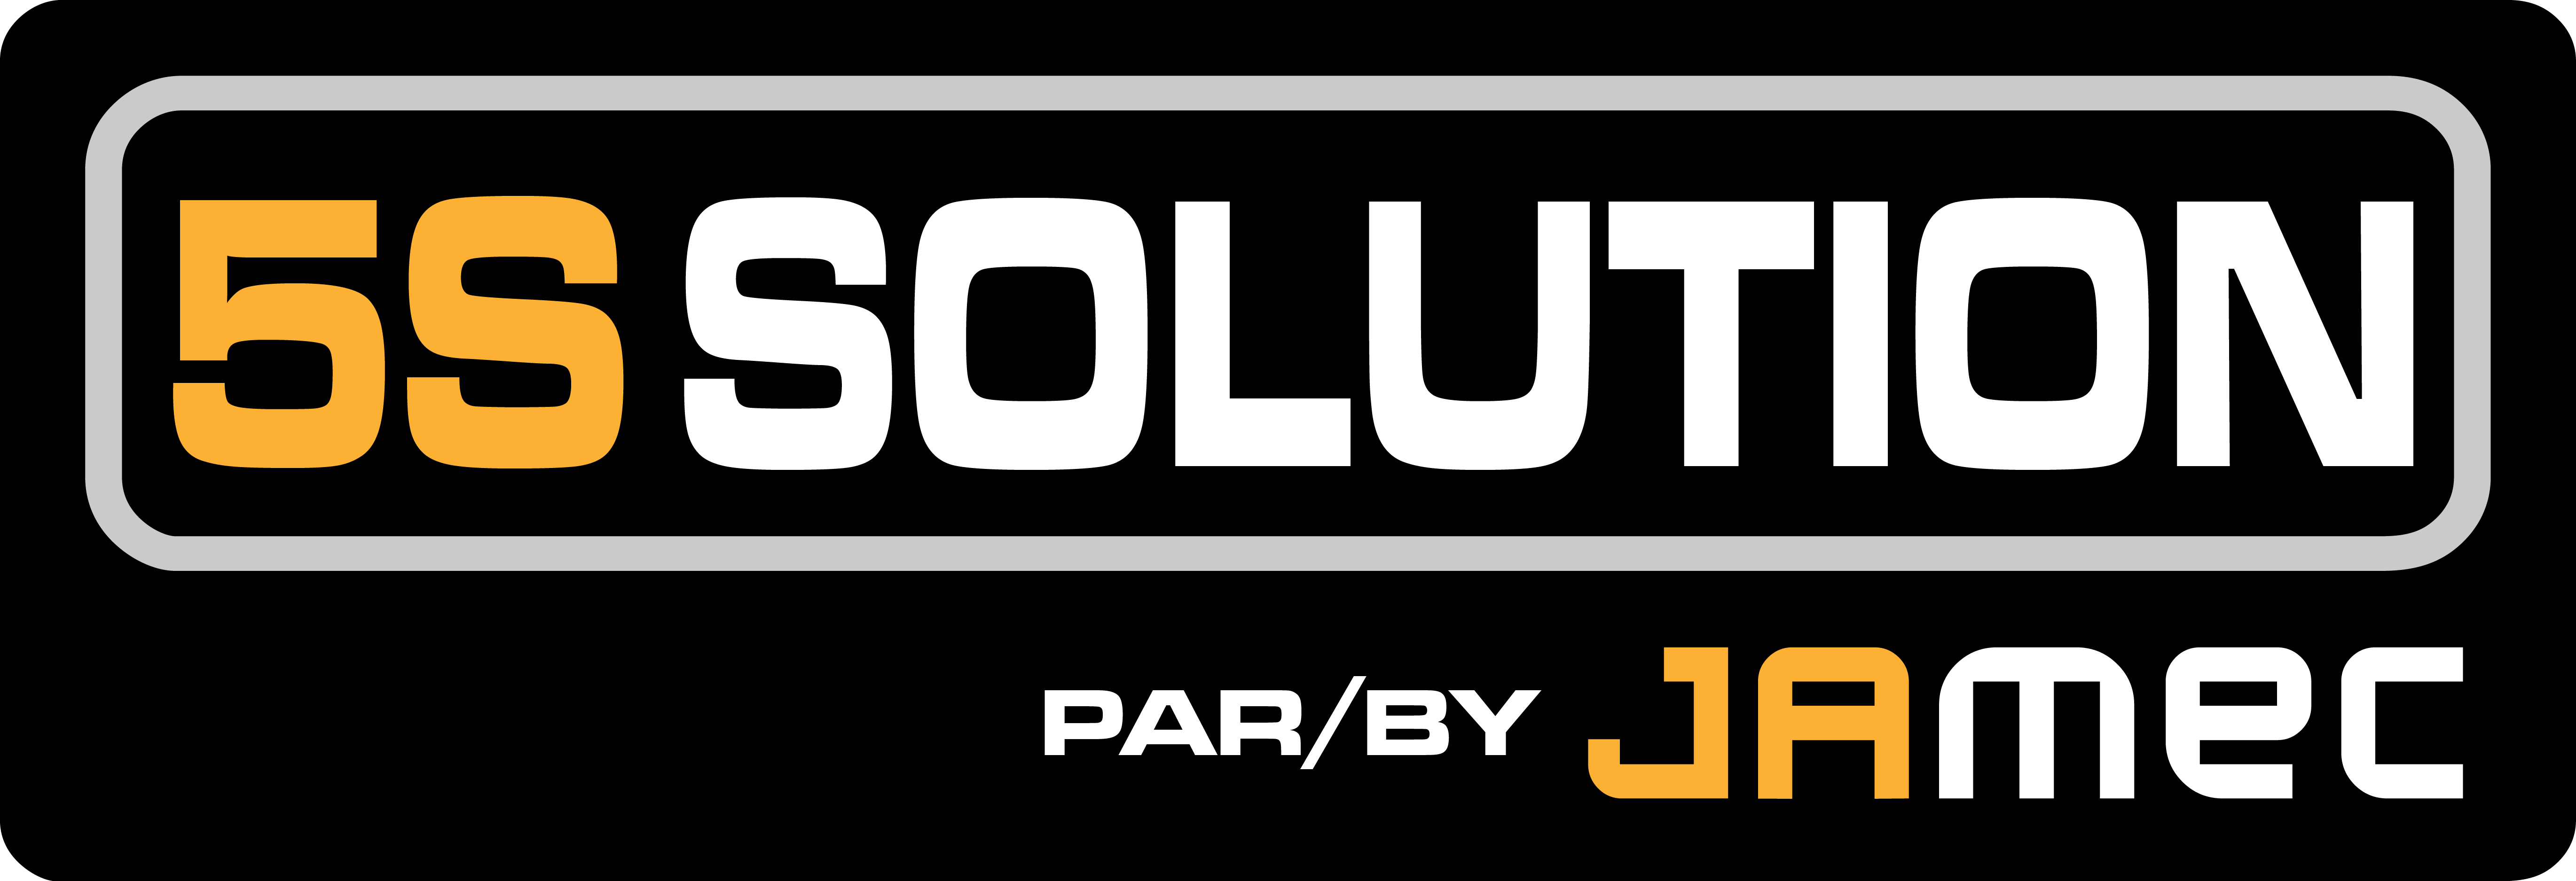 5S SOLUTION par/by JAMEC